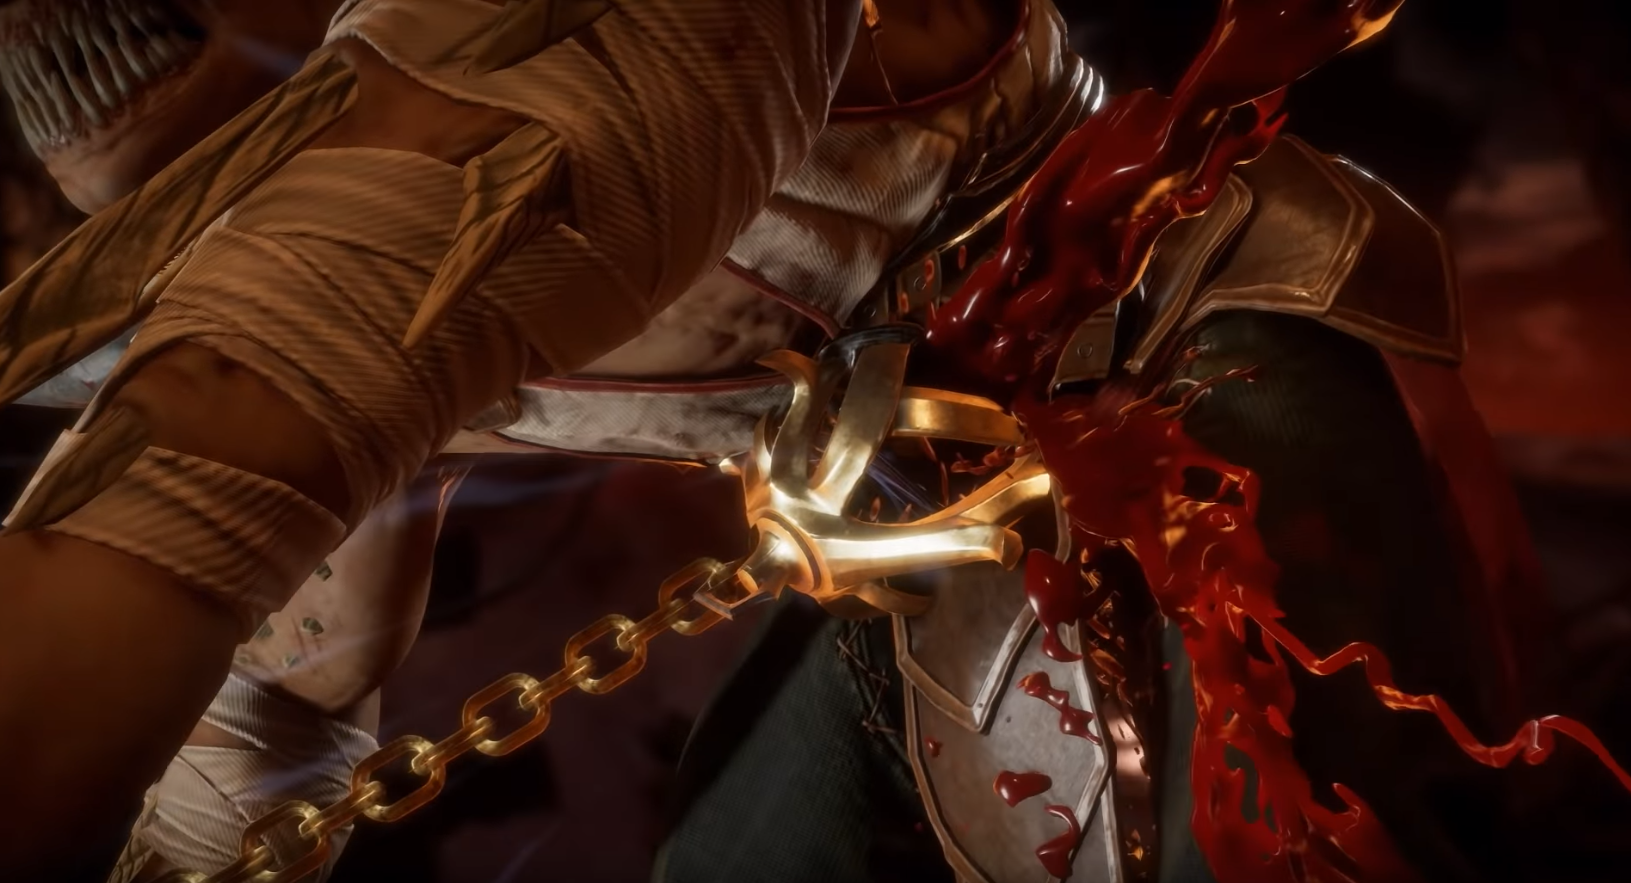 Kollector's gold melee weapon unleashes serious damage.